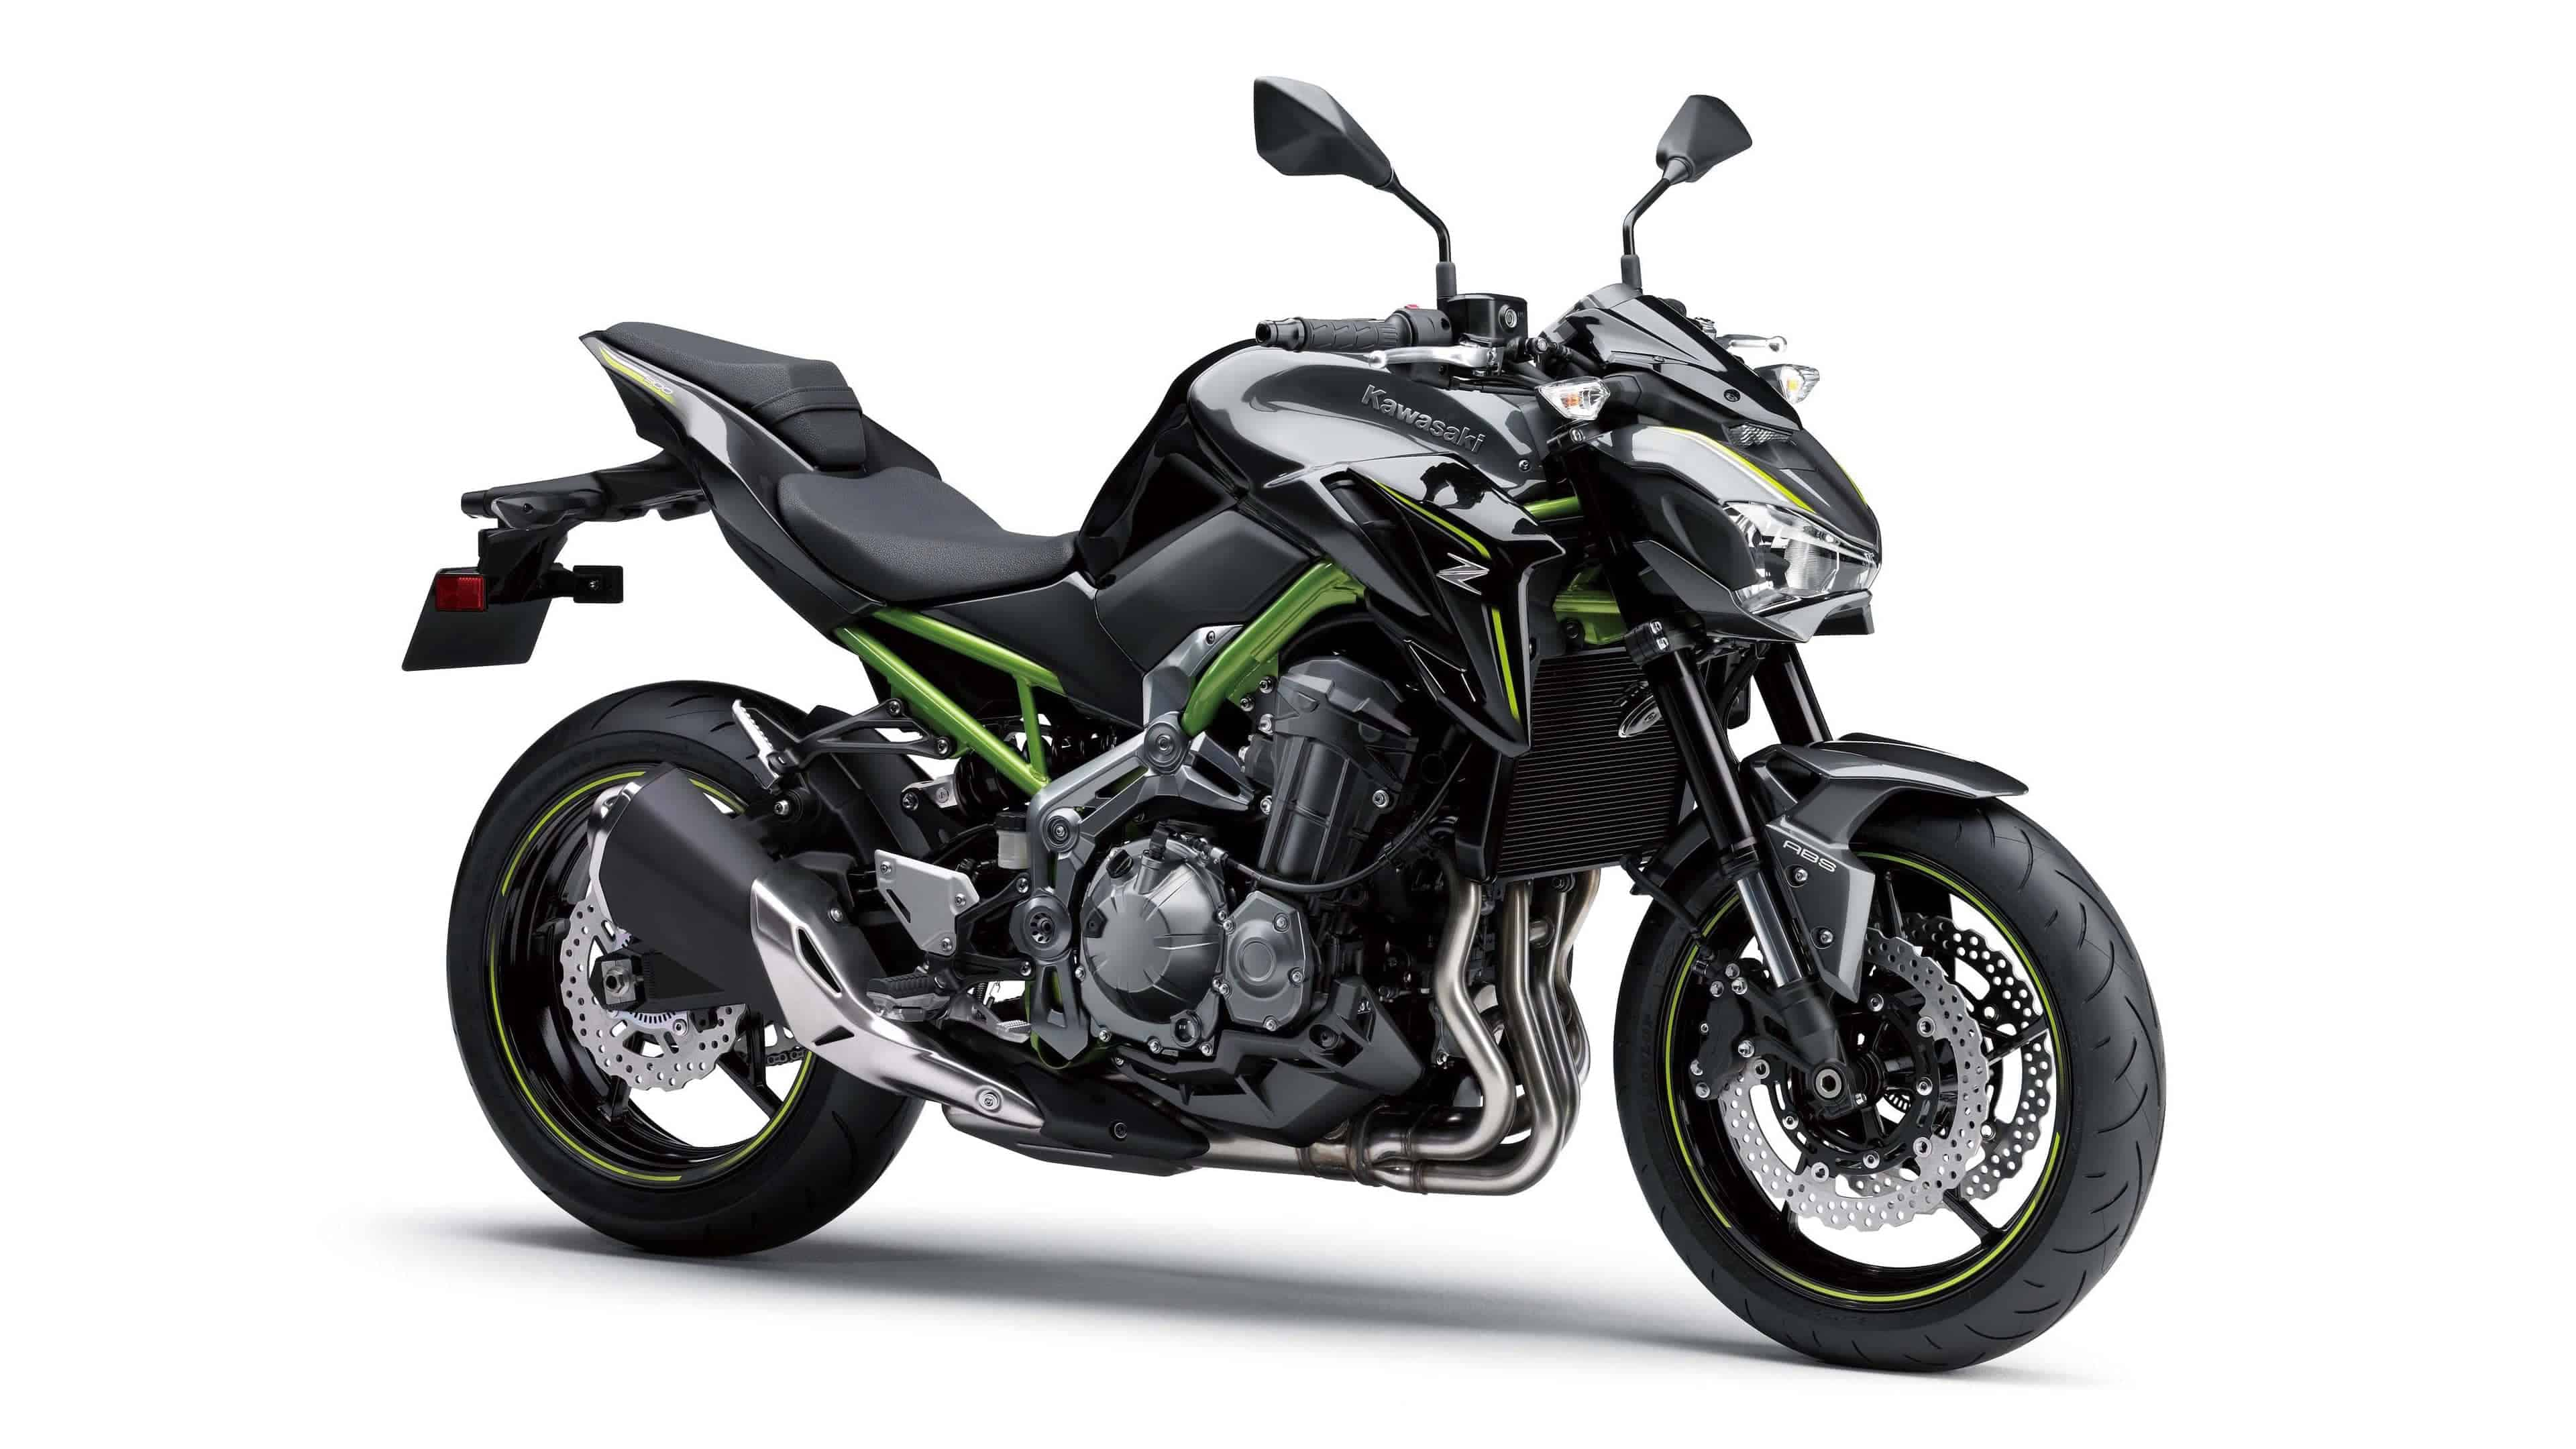 Z900 Wallpapers